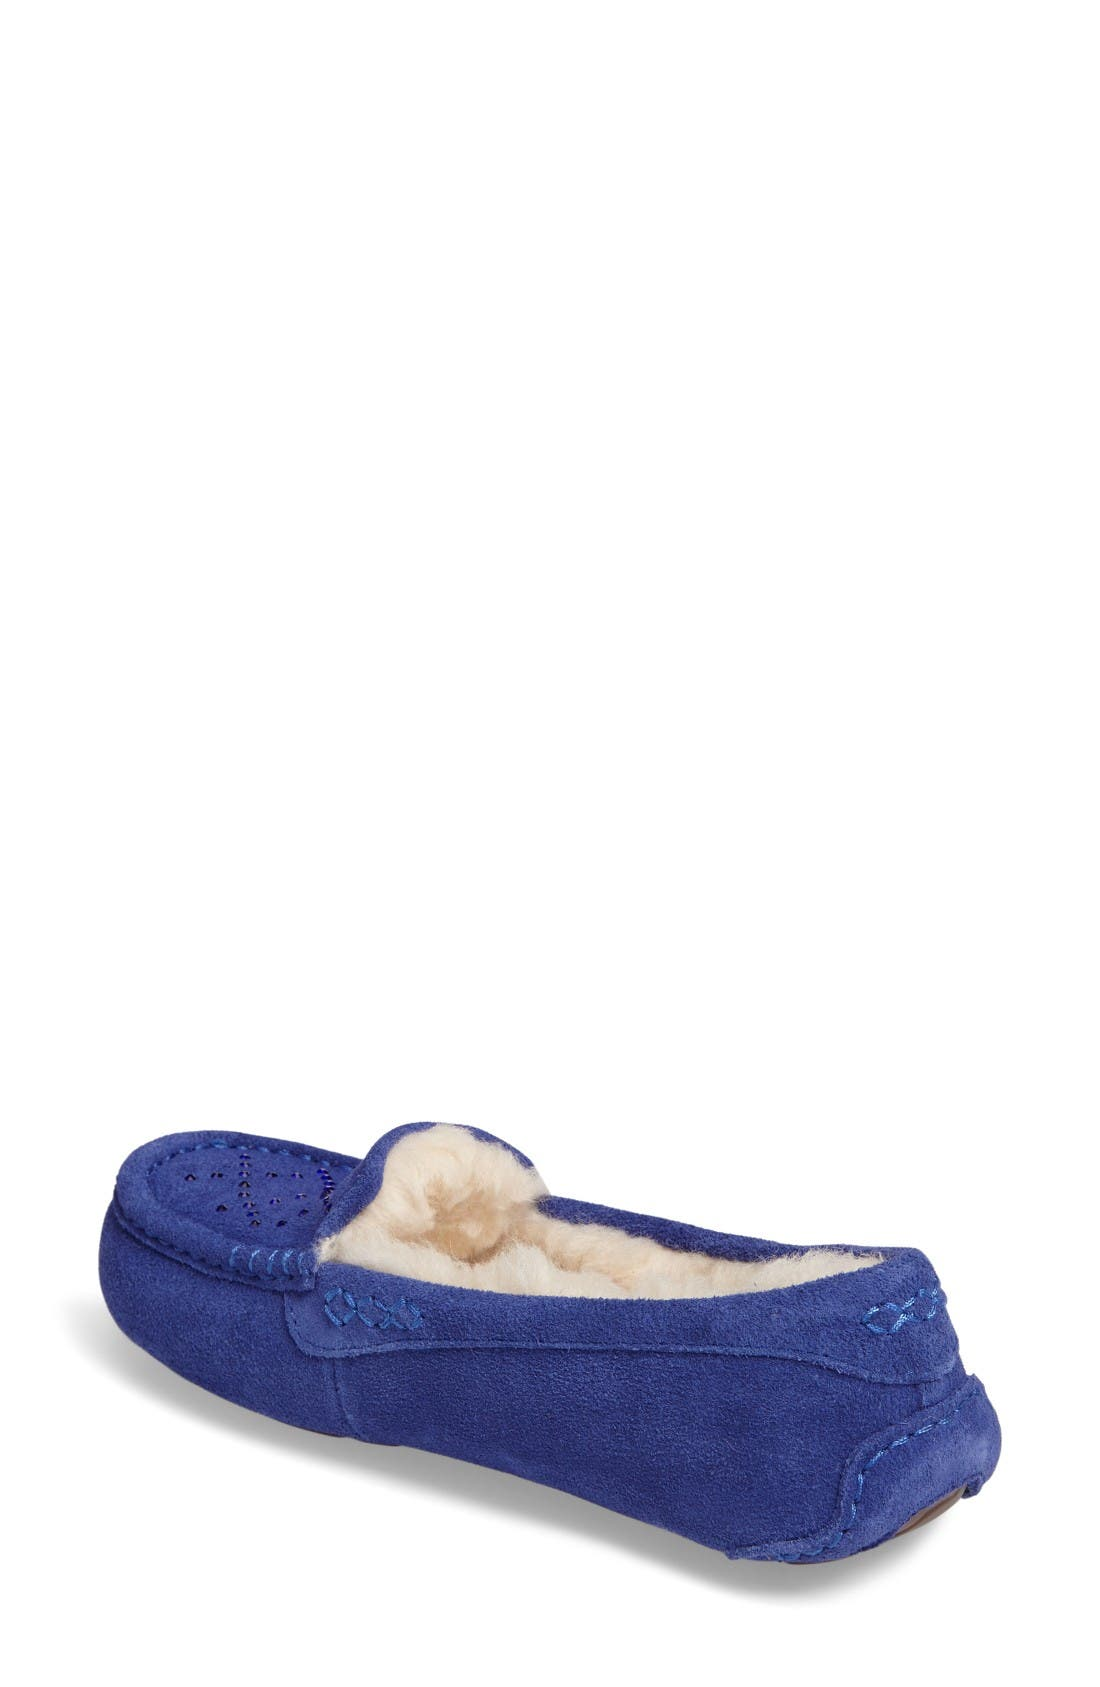 Alternate Image 2  - UGG® Ansley Embellished Slipper (Women)